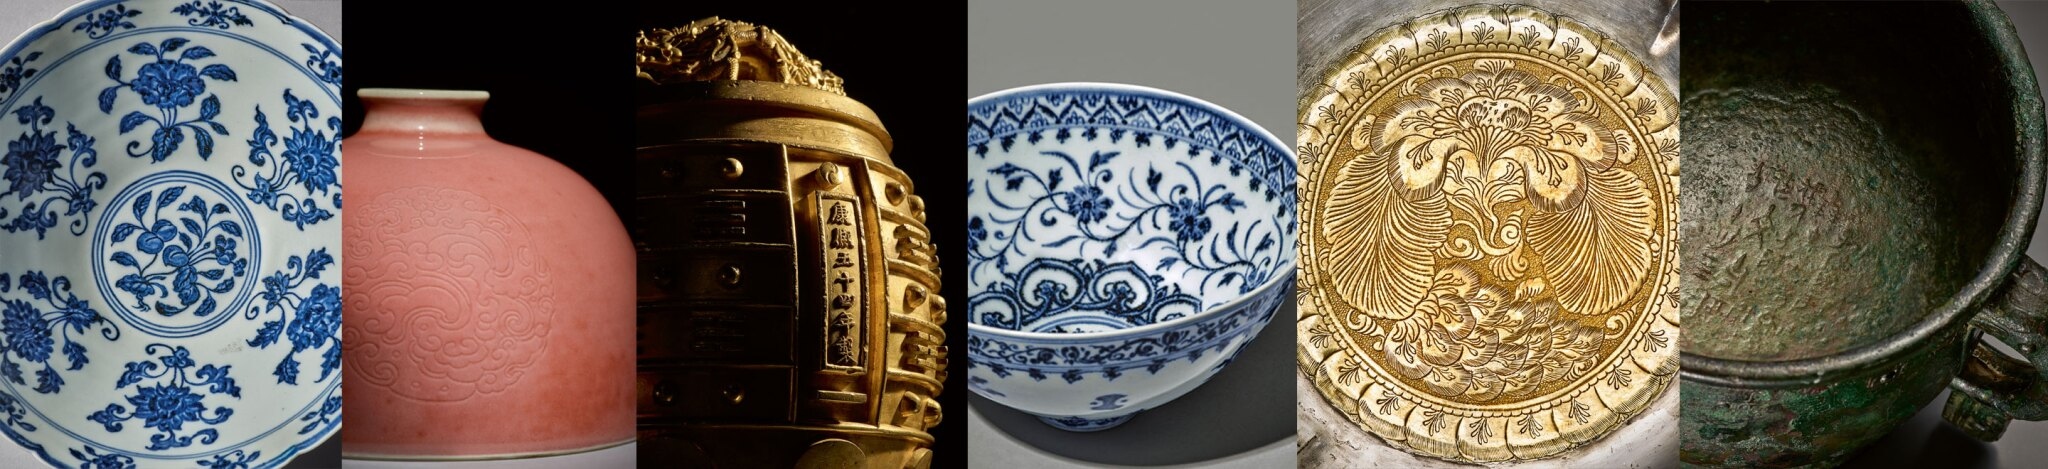 Highlights from Important Chinese Art